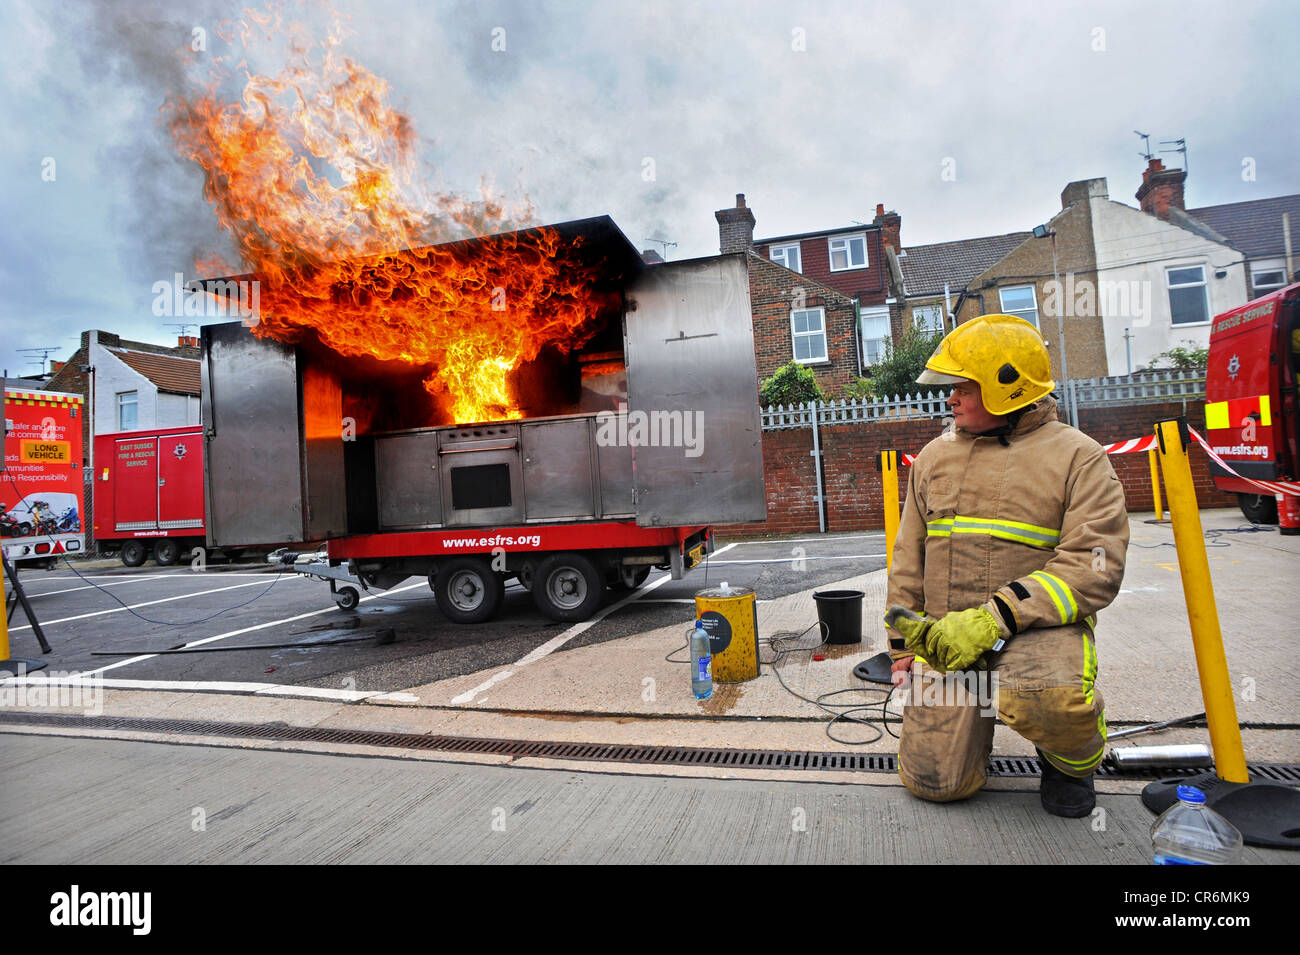 Chip pan fire demonstration by East Sussex Fire and Rescue during an open day at Eastbourne Fire Station - Stock Image